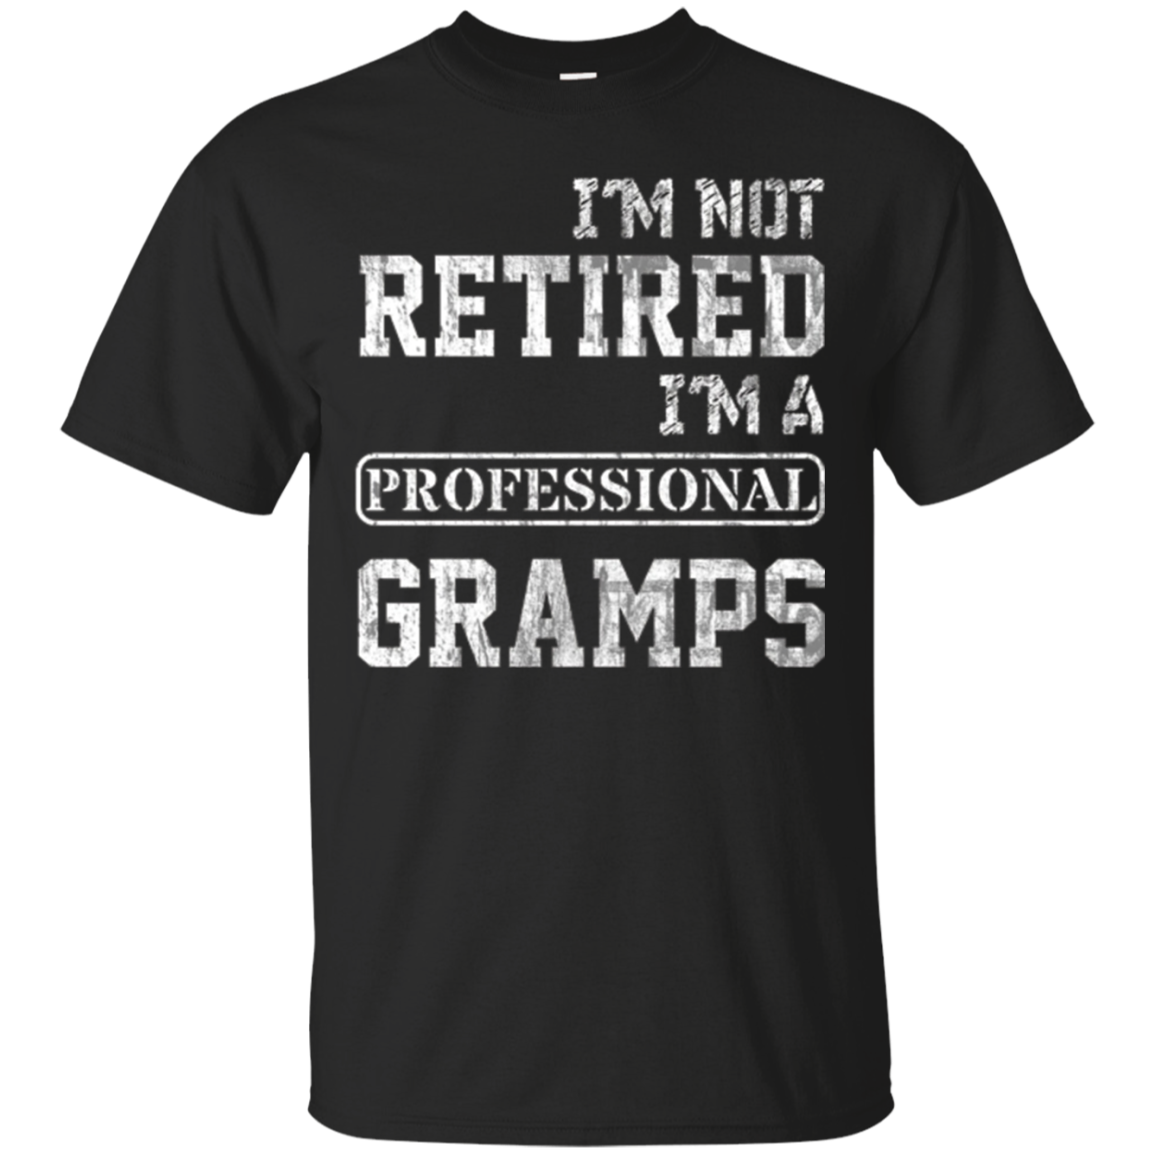 I'm Not Retired I'm A Professional Gramps T-Shirt Gift